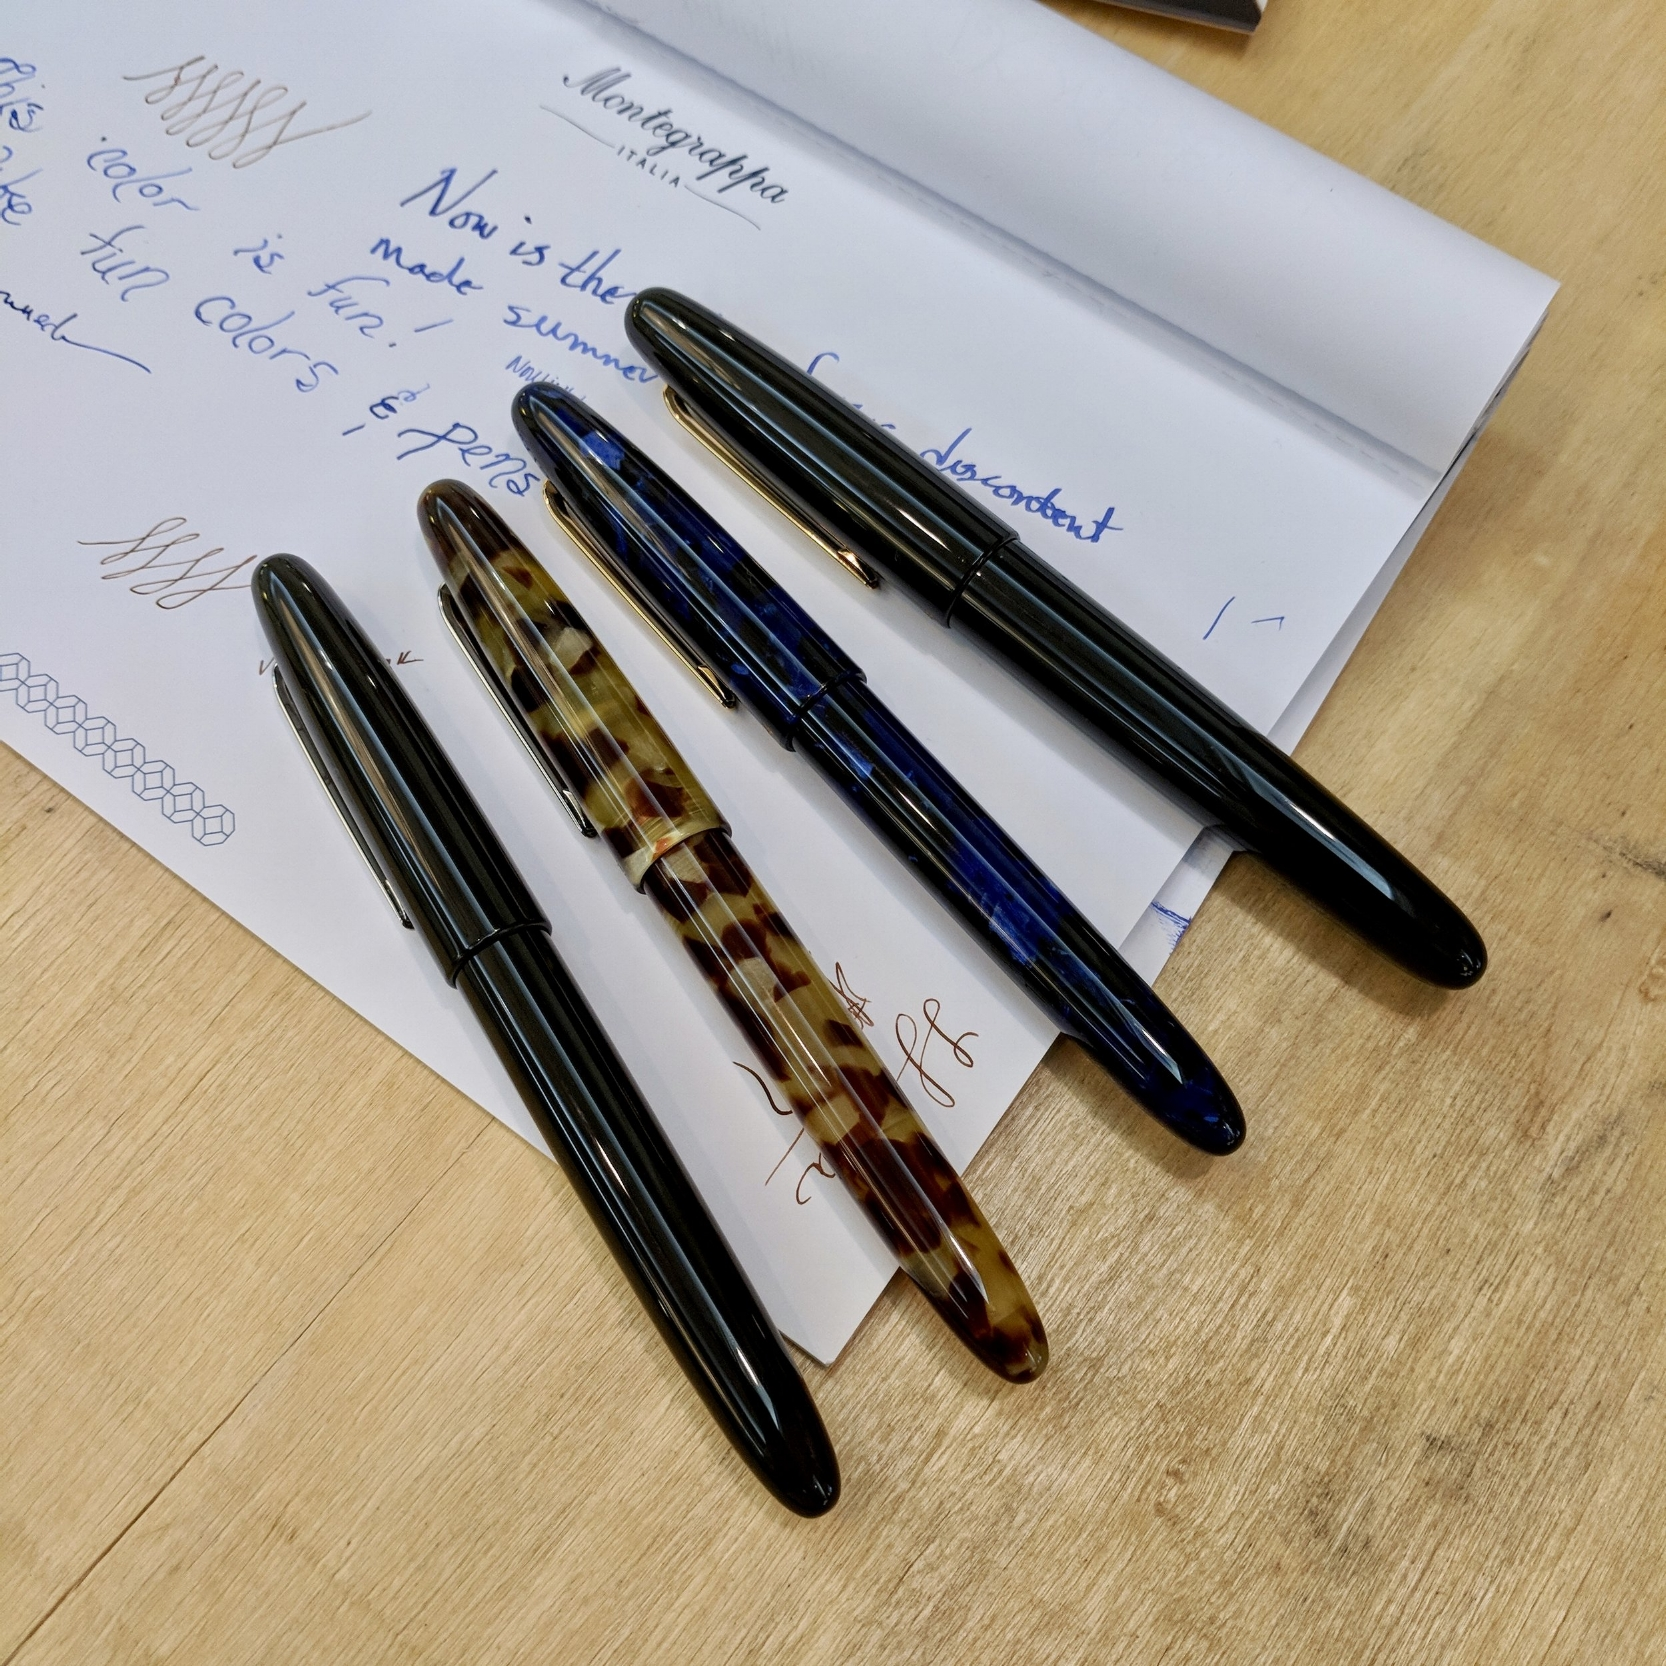 "Kenro ""soft launched"" the new series of Esterbrook pens at the 2018 D.C. Pen Show. They sport a much more classic design than the first round of modern Esterbrooks."